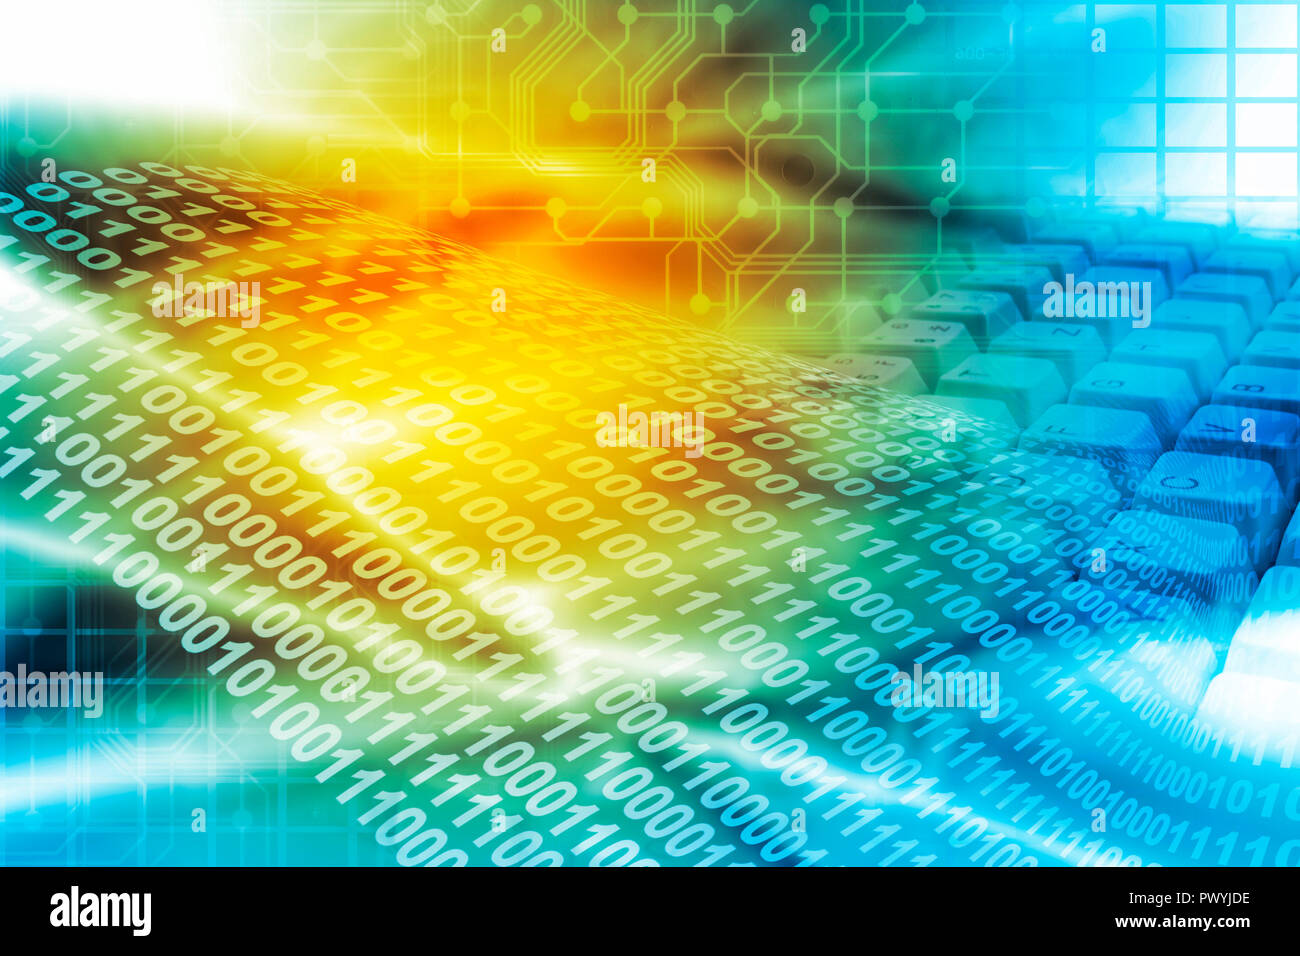 abstract background with binary digits and computer keyboard - Stock Image